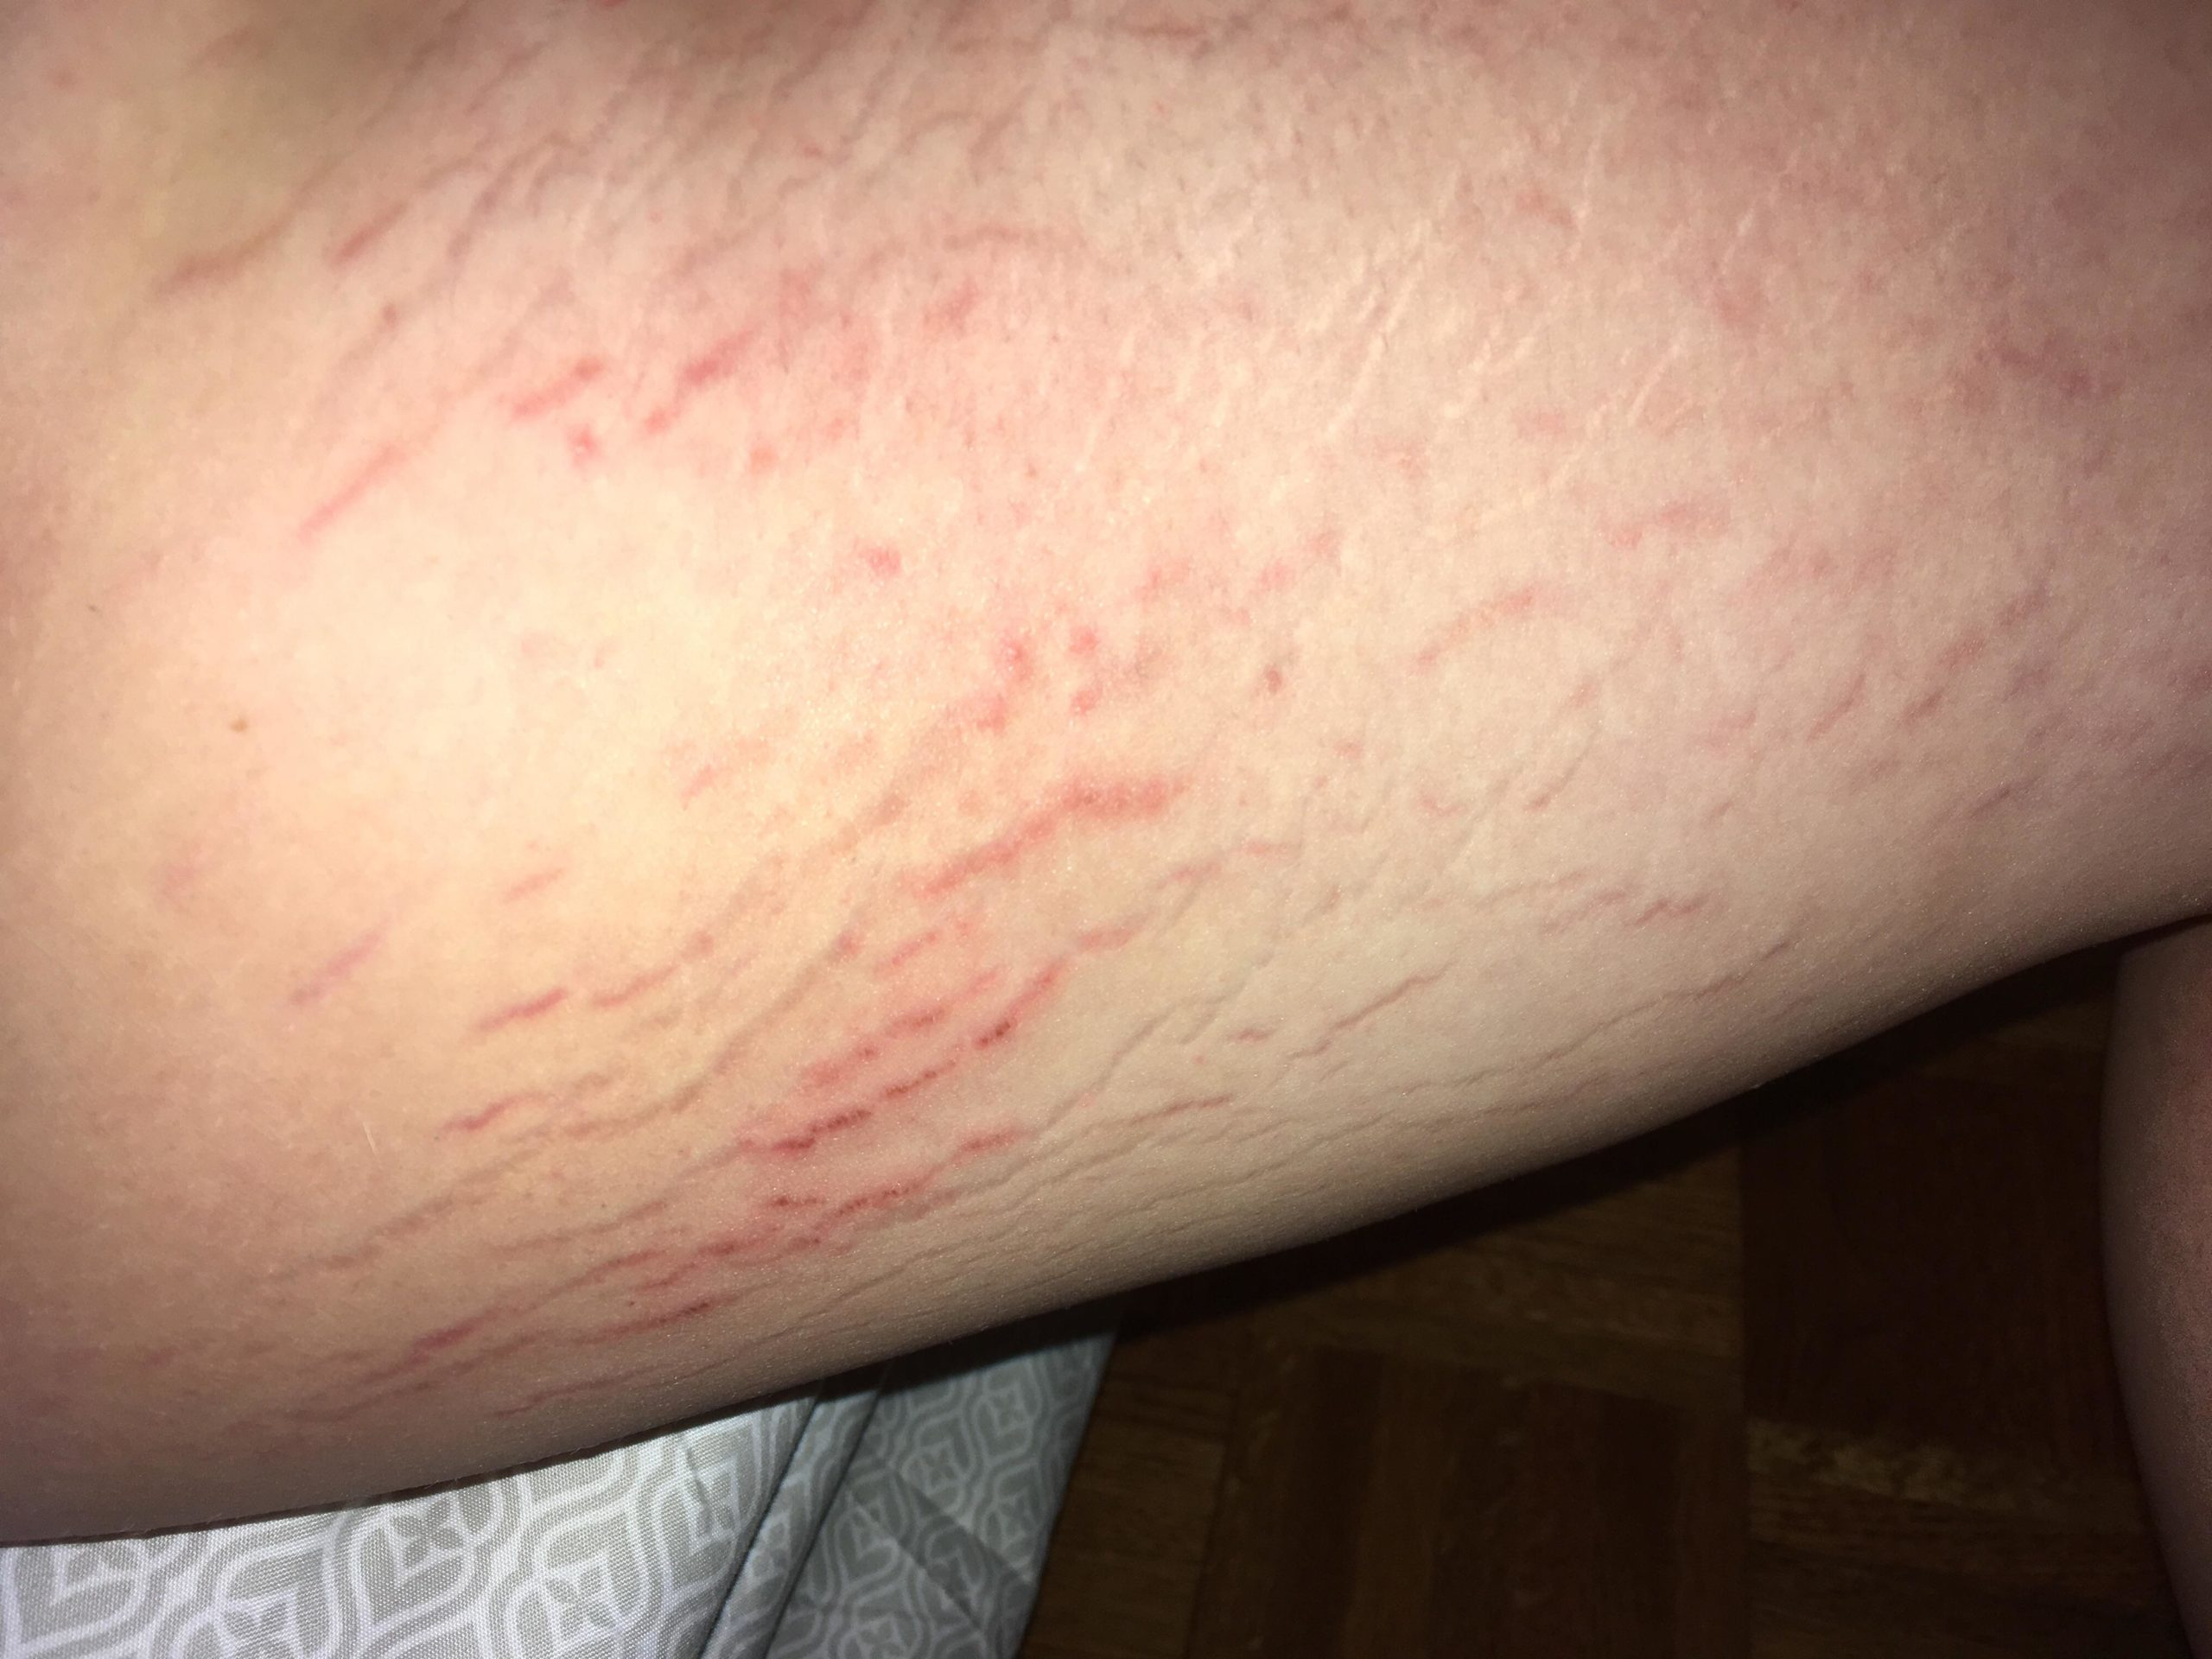 Stretch Marks On The Thigh That Feels Painful?